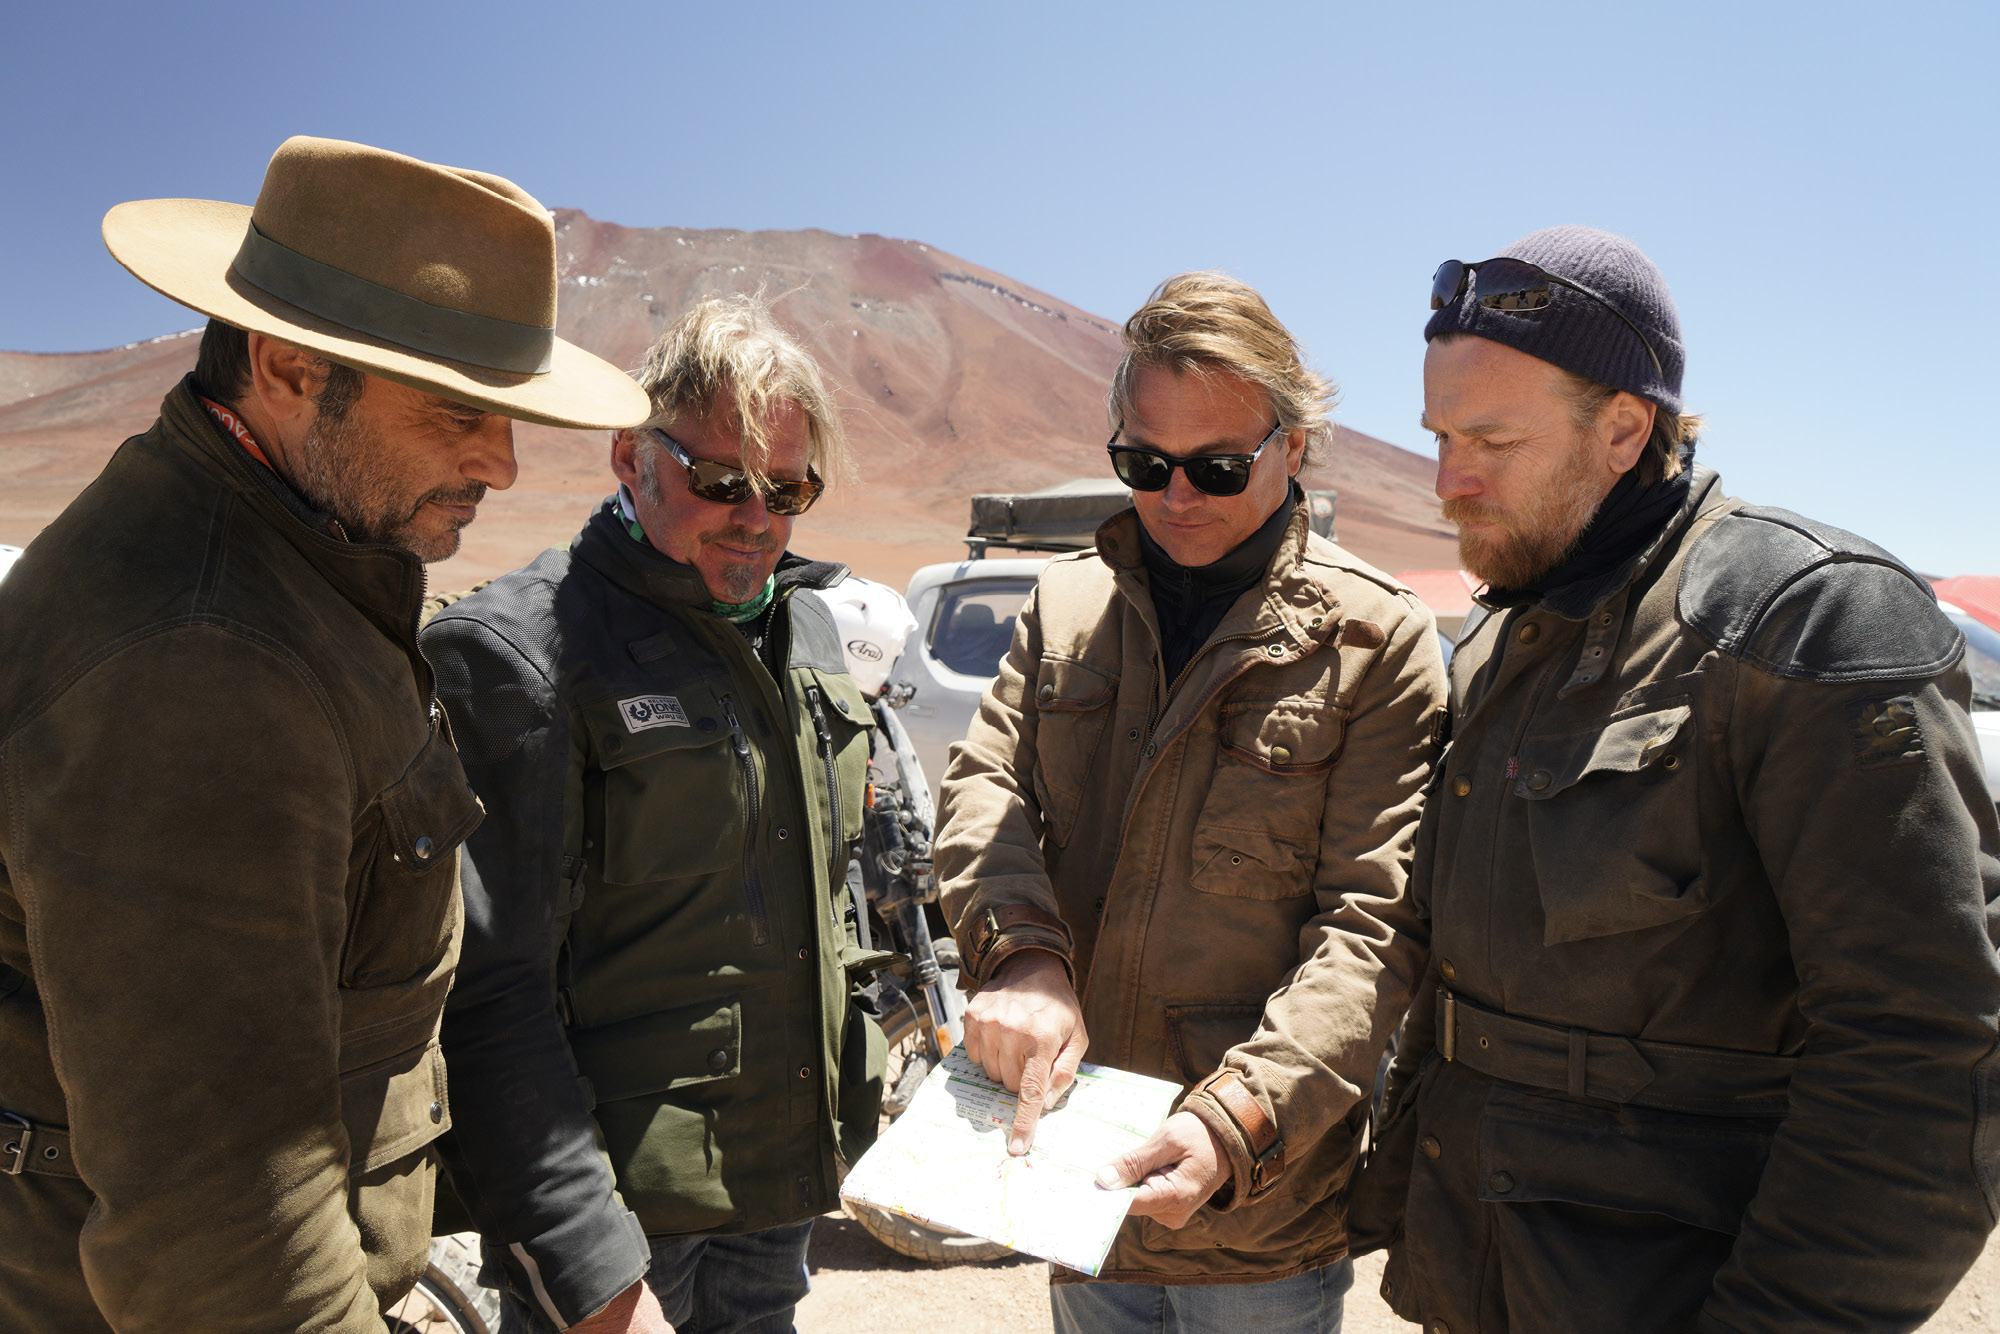 Ewan McGregor and Charley Boorman on the road in The Long Way Up